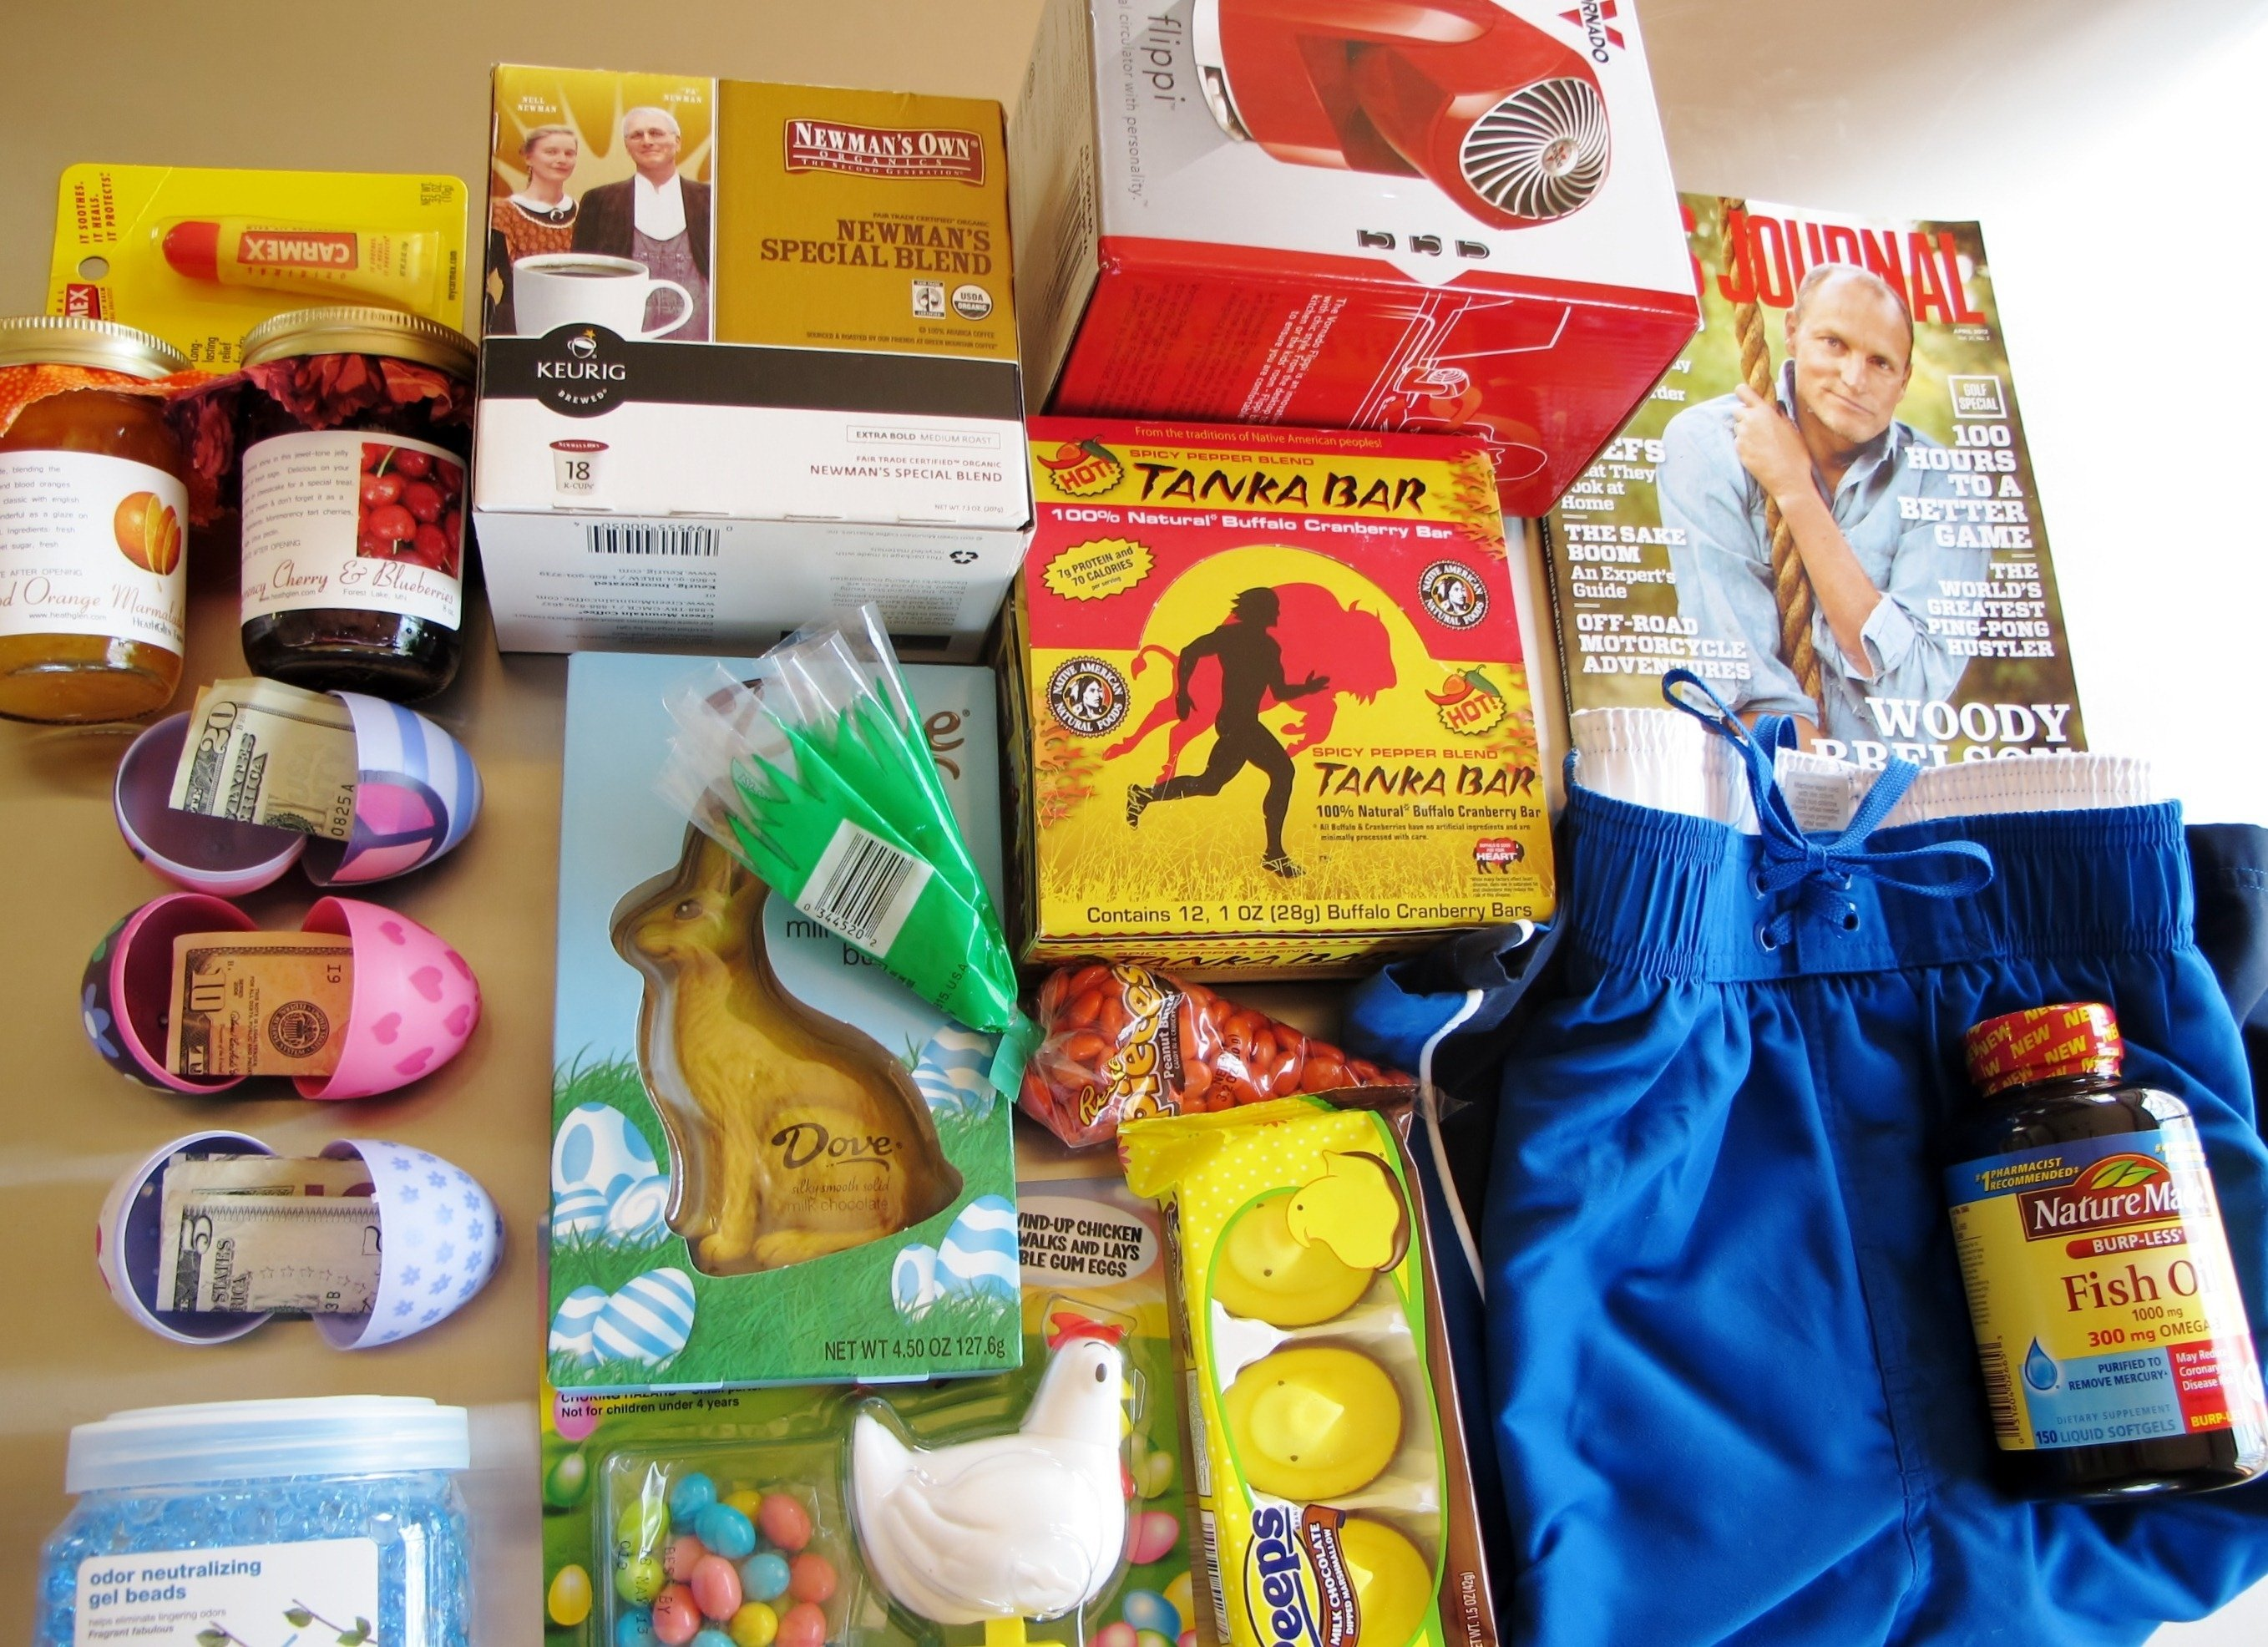 10 Ideal College Student Care Package Ideas easter care package farm to jar food 3 2020